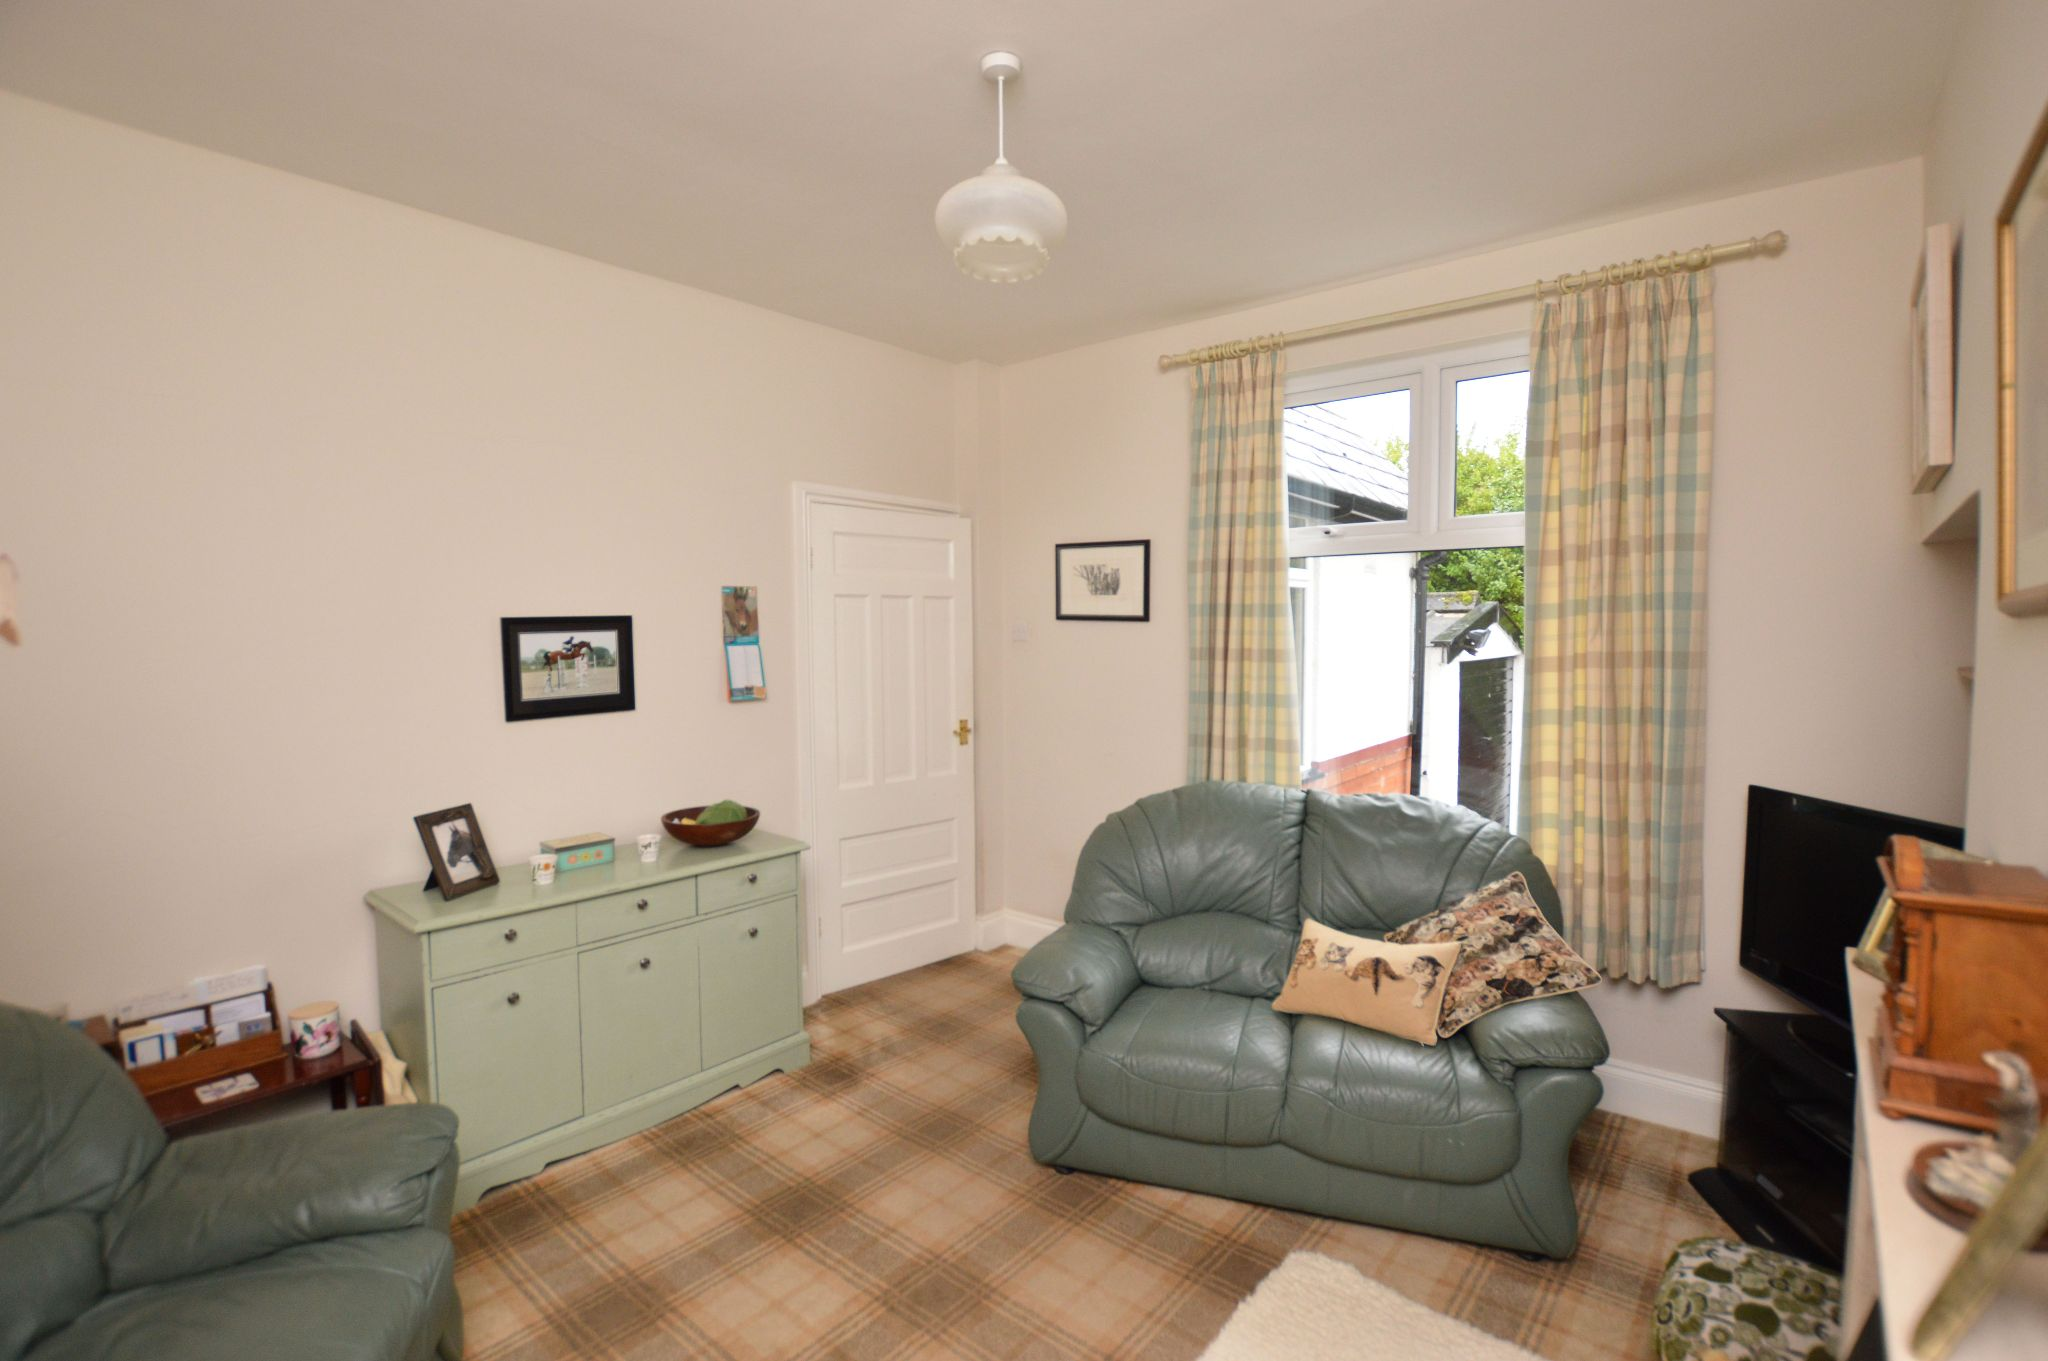 4 bedroom detached bungalow For Sale in Abergele - Reception Room